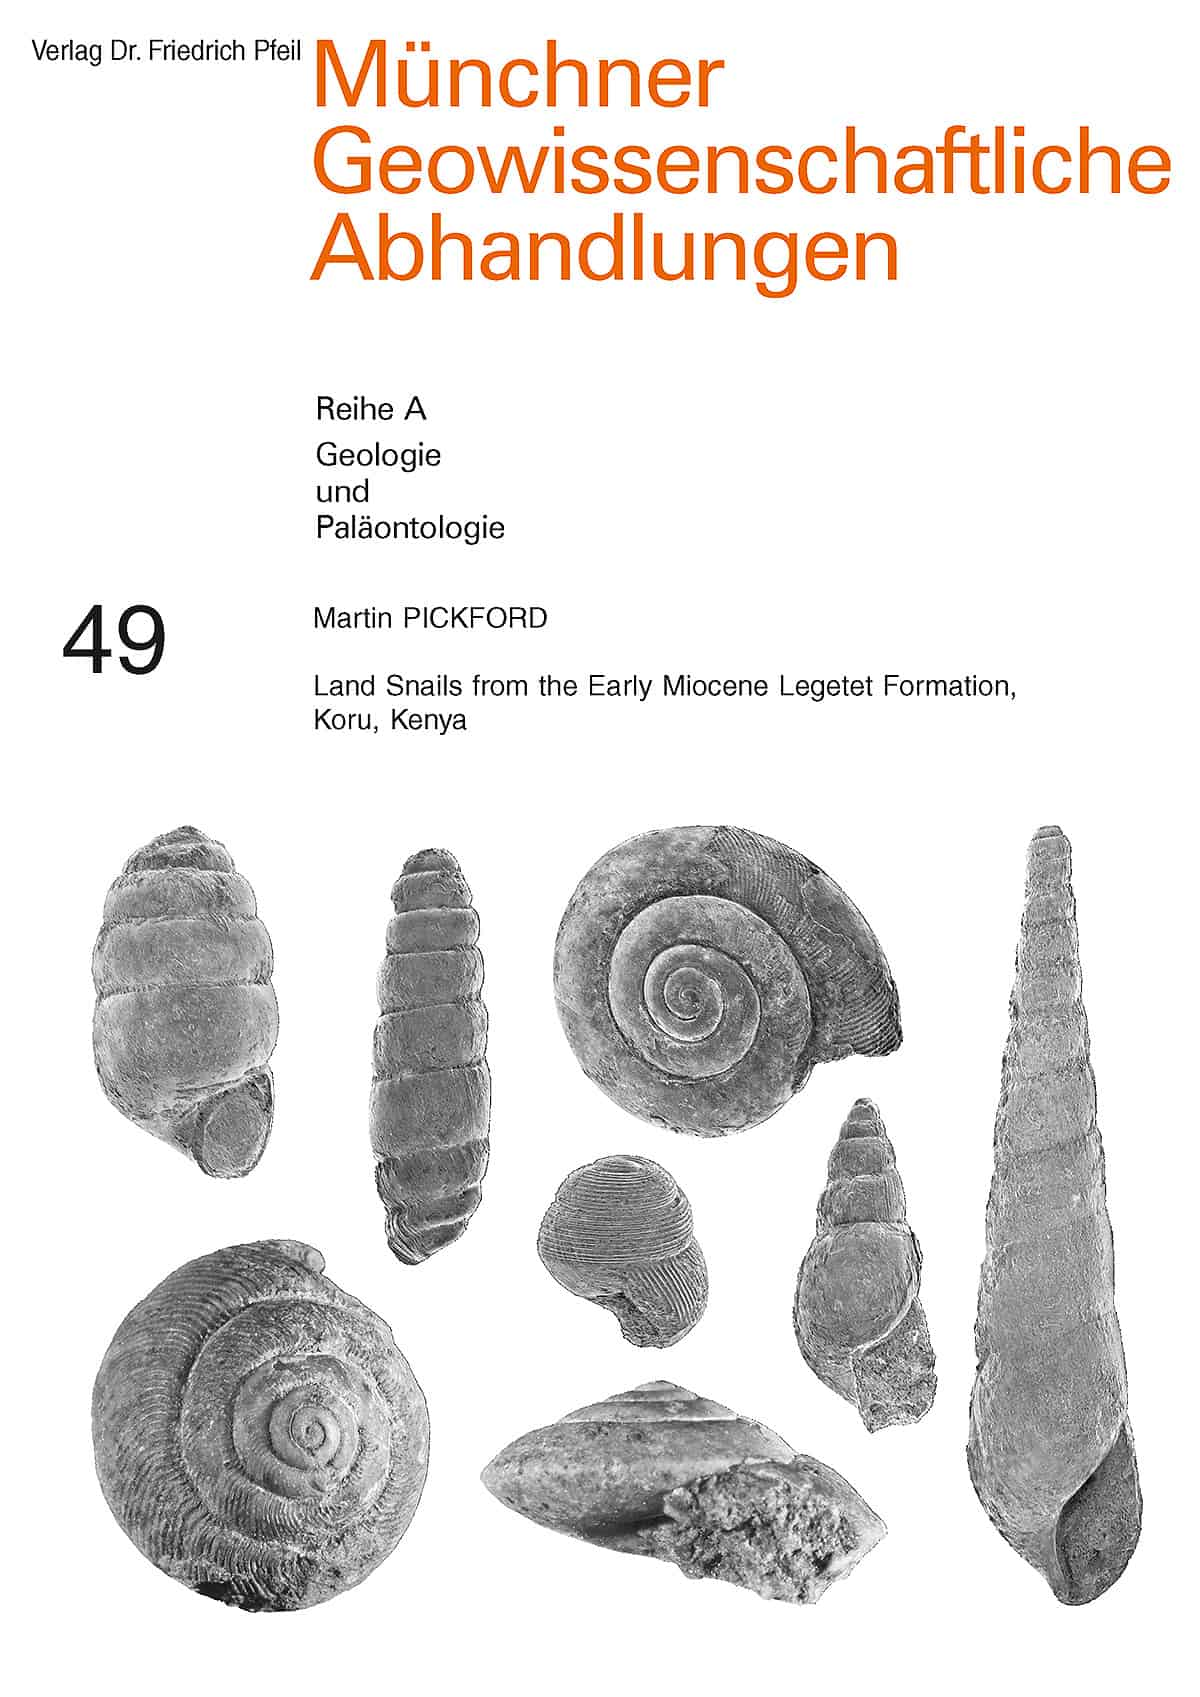 Land Snails from the Early Miocene Legetet Formation, Koru, Kenya